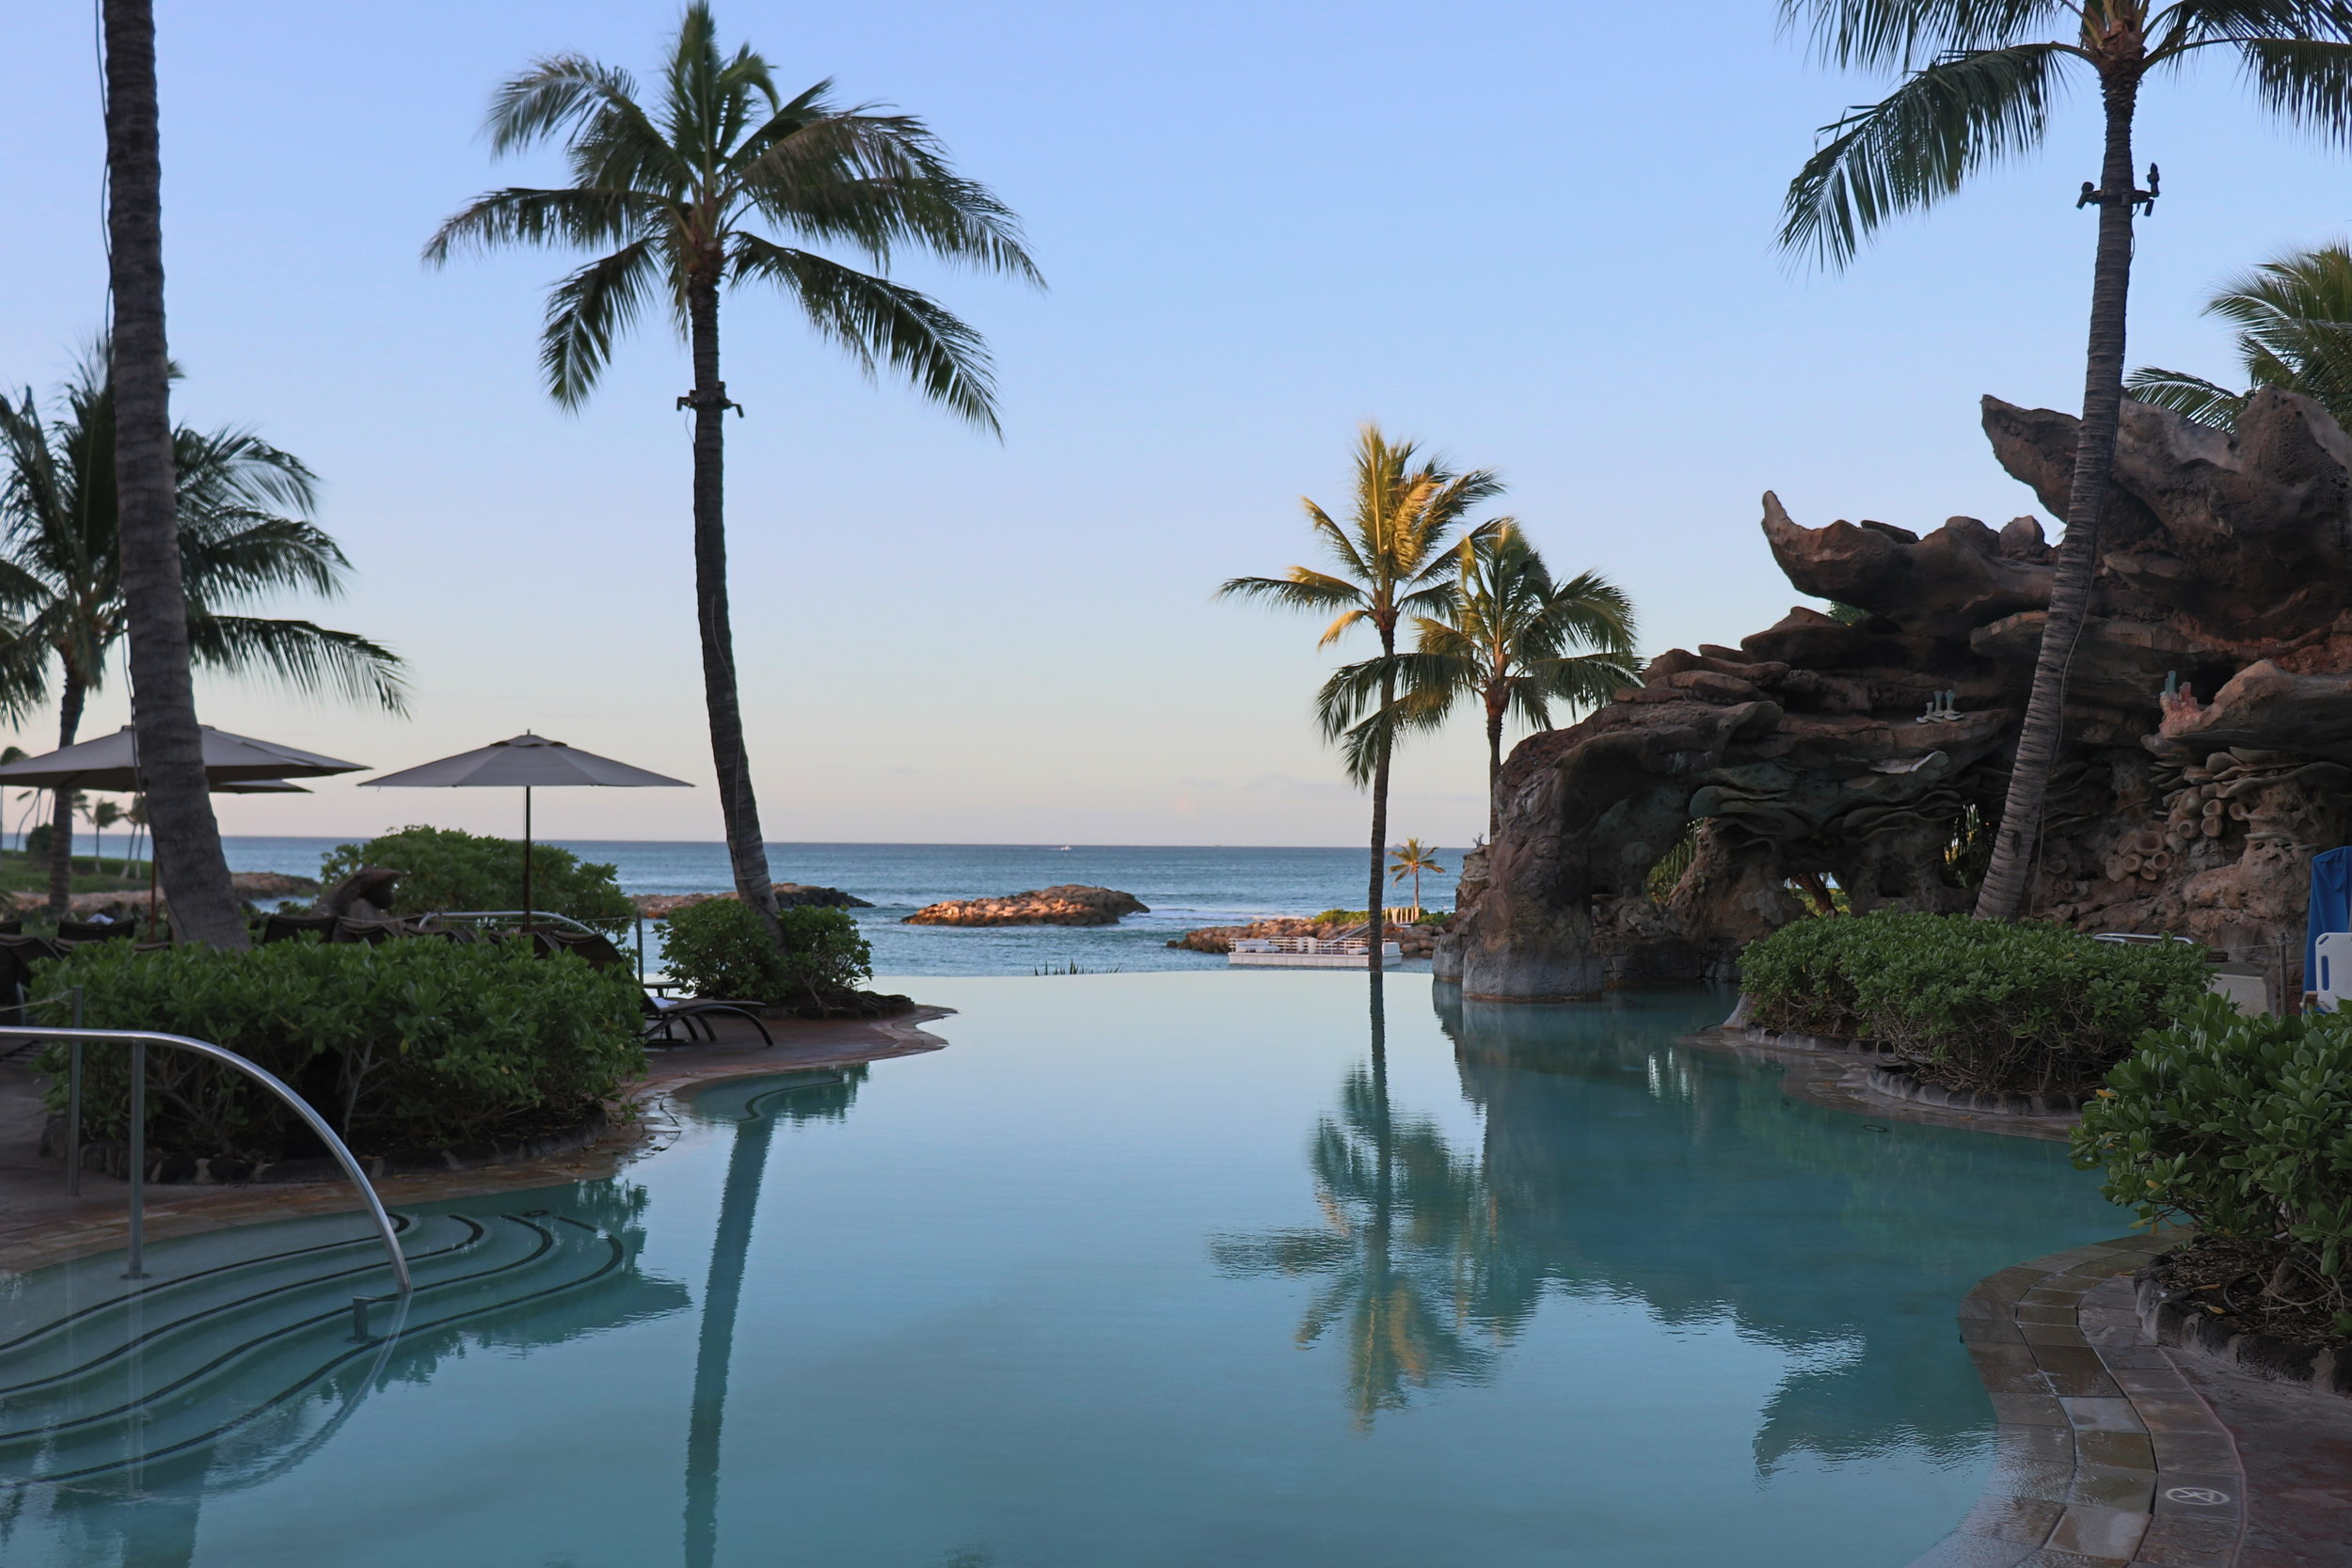 This infinity pool featured whale noises under the water.